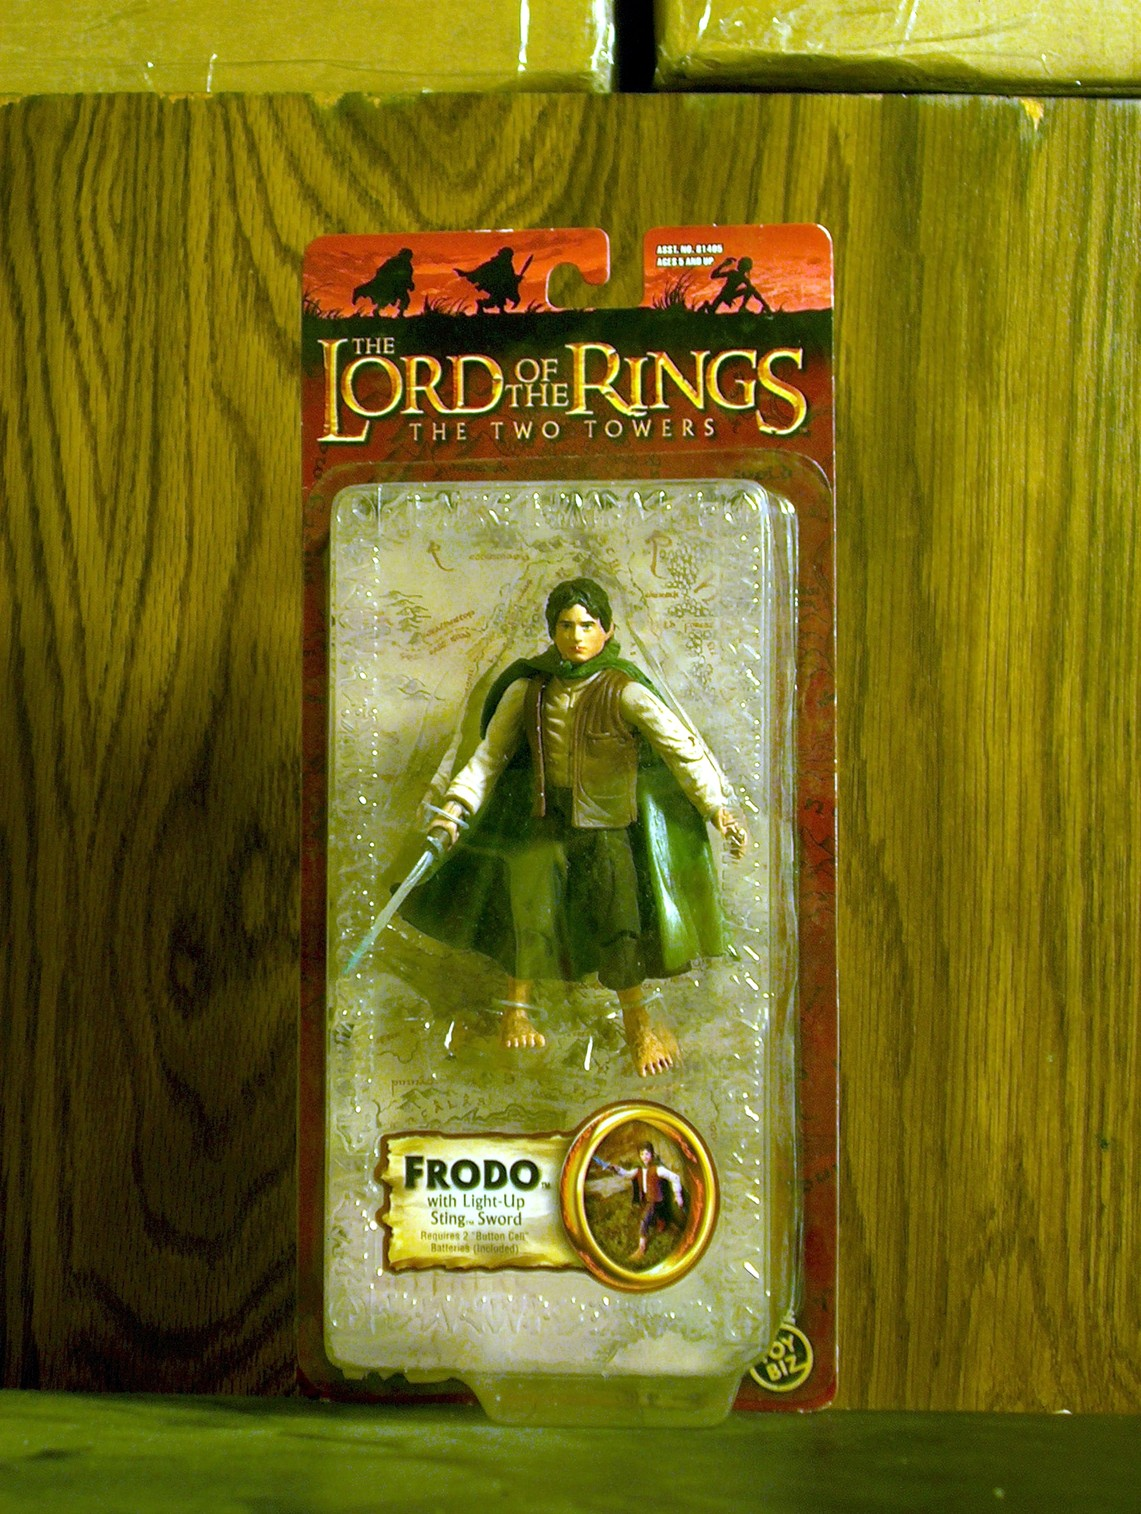 Frodo with Light-Up Sting Sword